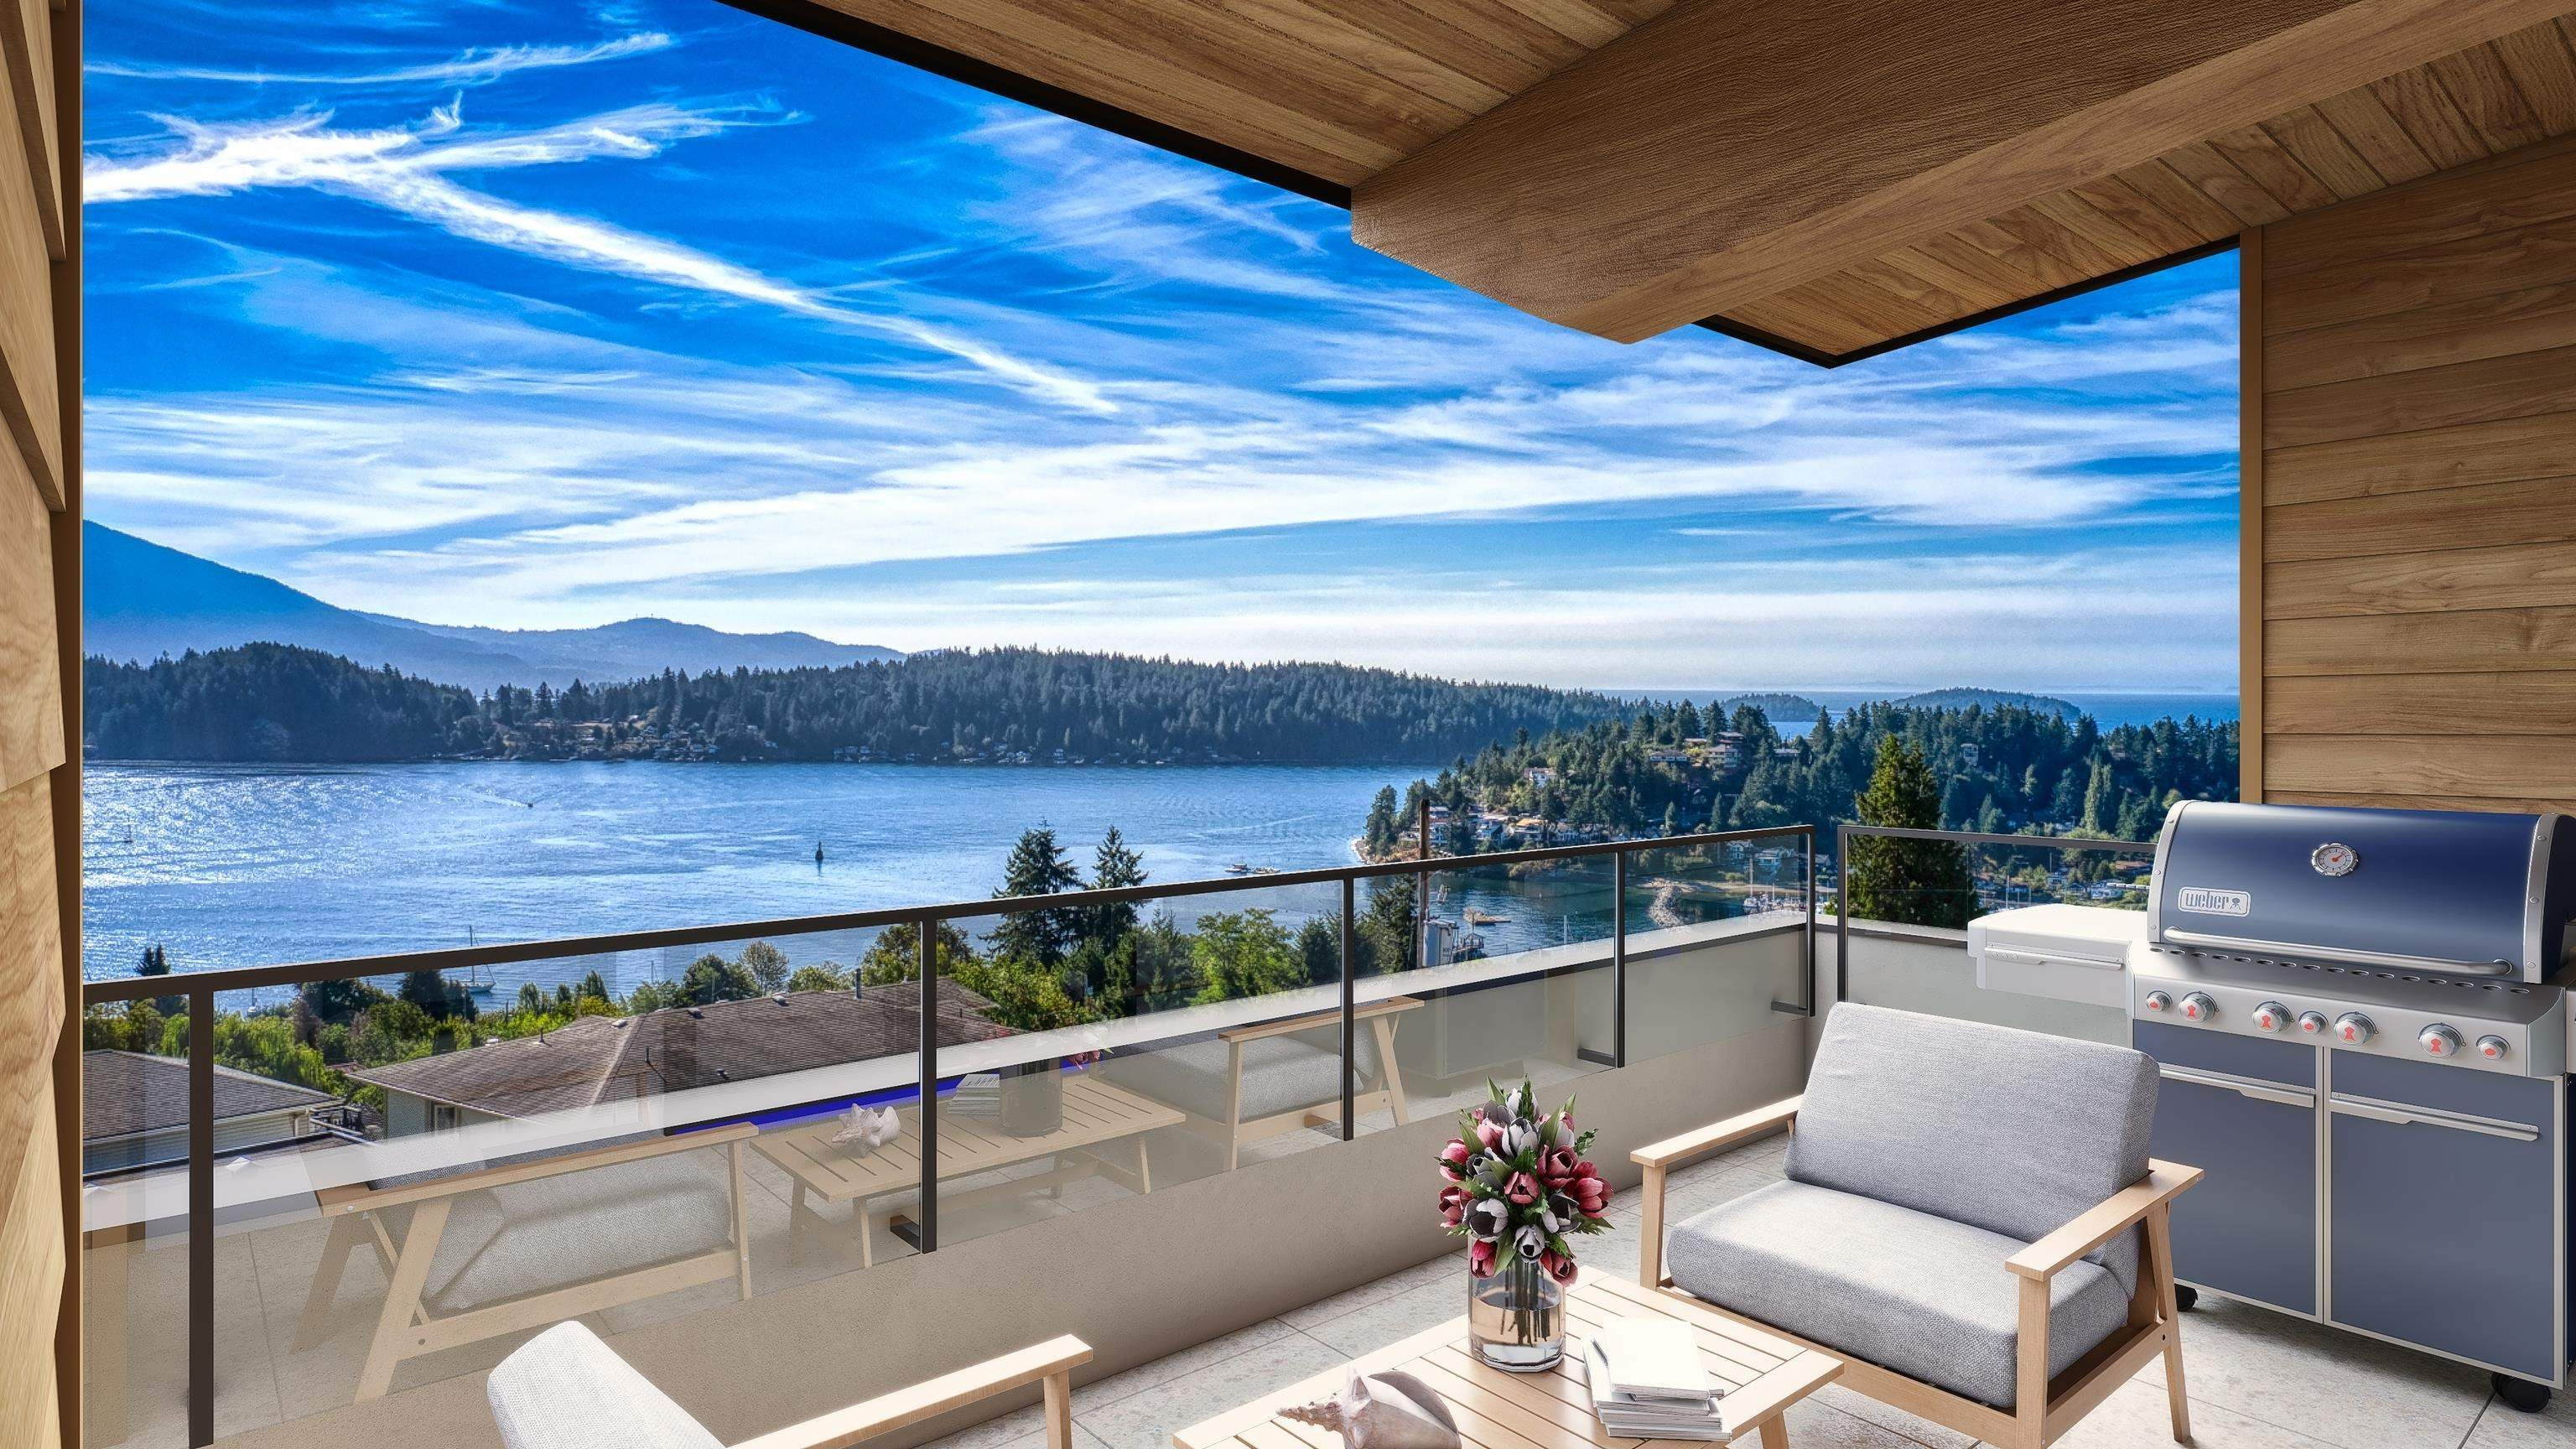 """Main Photo: 304 710 SCHOOL Road in Gibsons: Gibsons & Area Condo for sale in """"The Murray-JPG"""" (Sunshine Coast)  : MLS®# R2611902"""